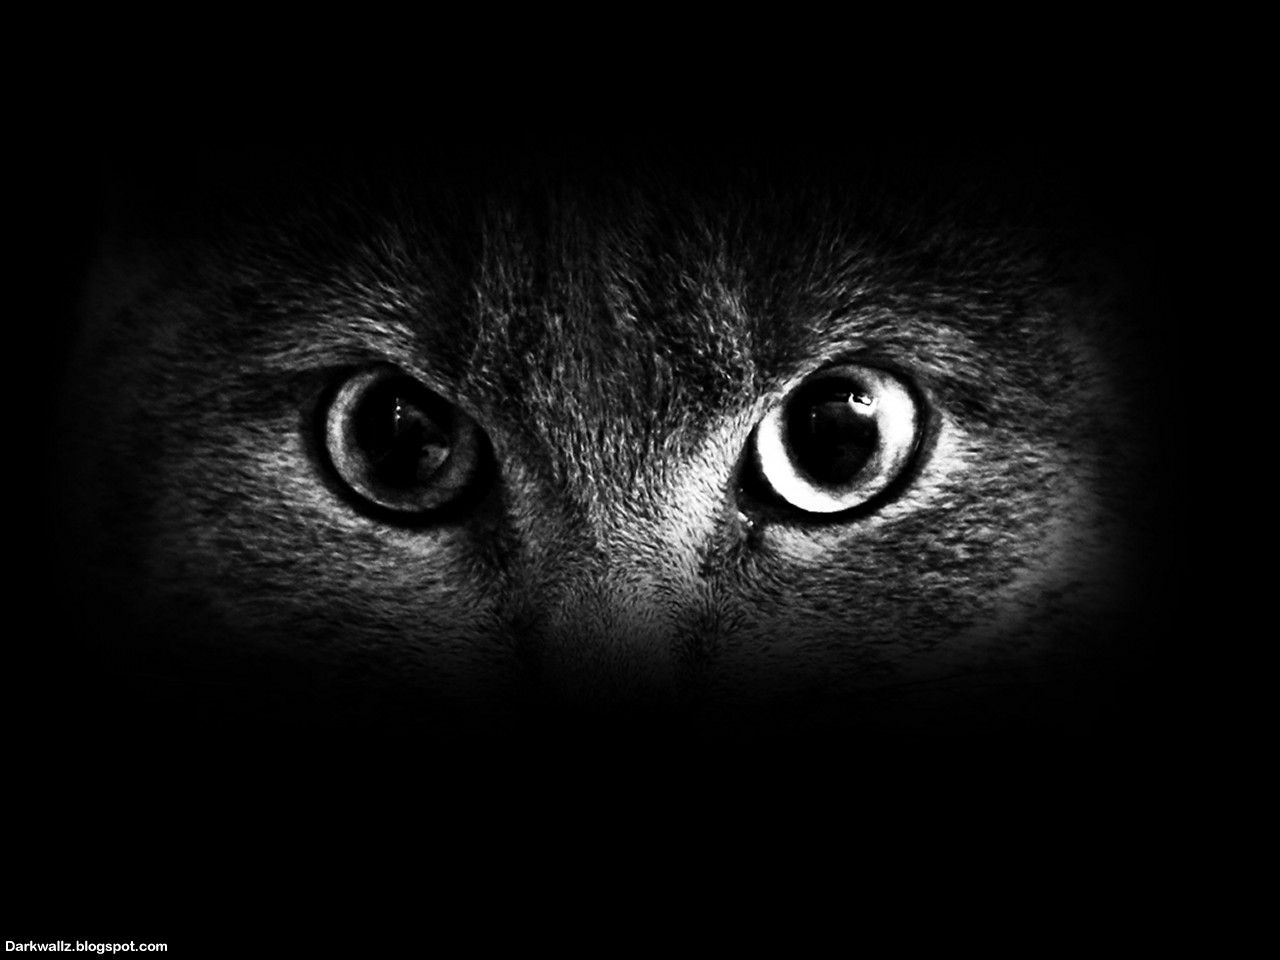 Scary Eyes Wallpapers 23 | Dark Wallpaper Download